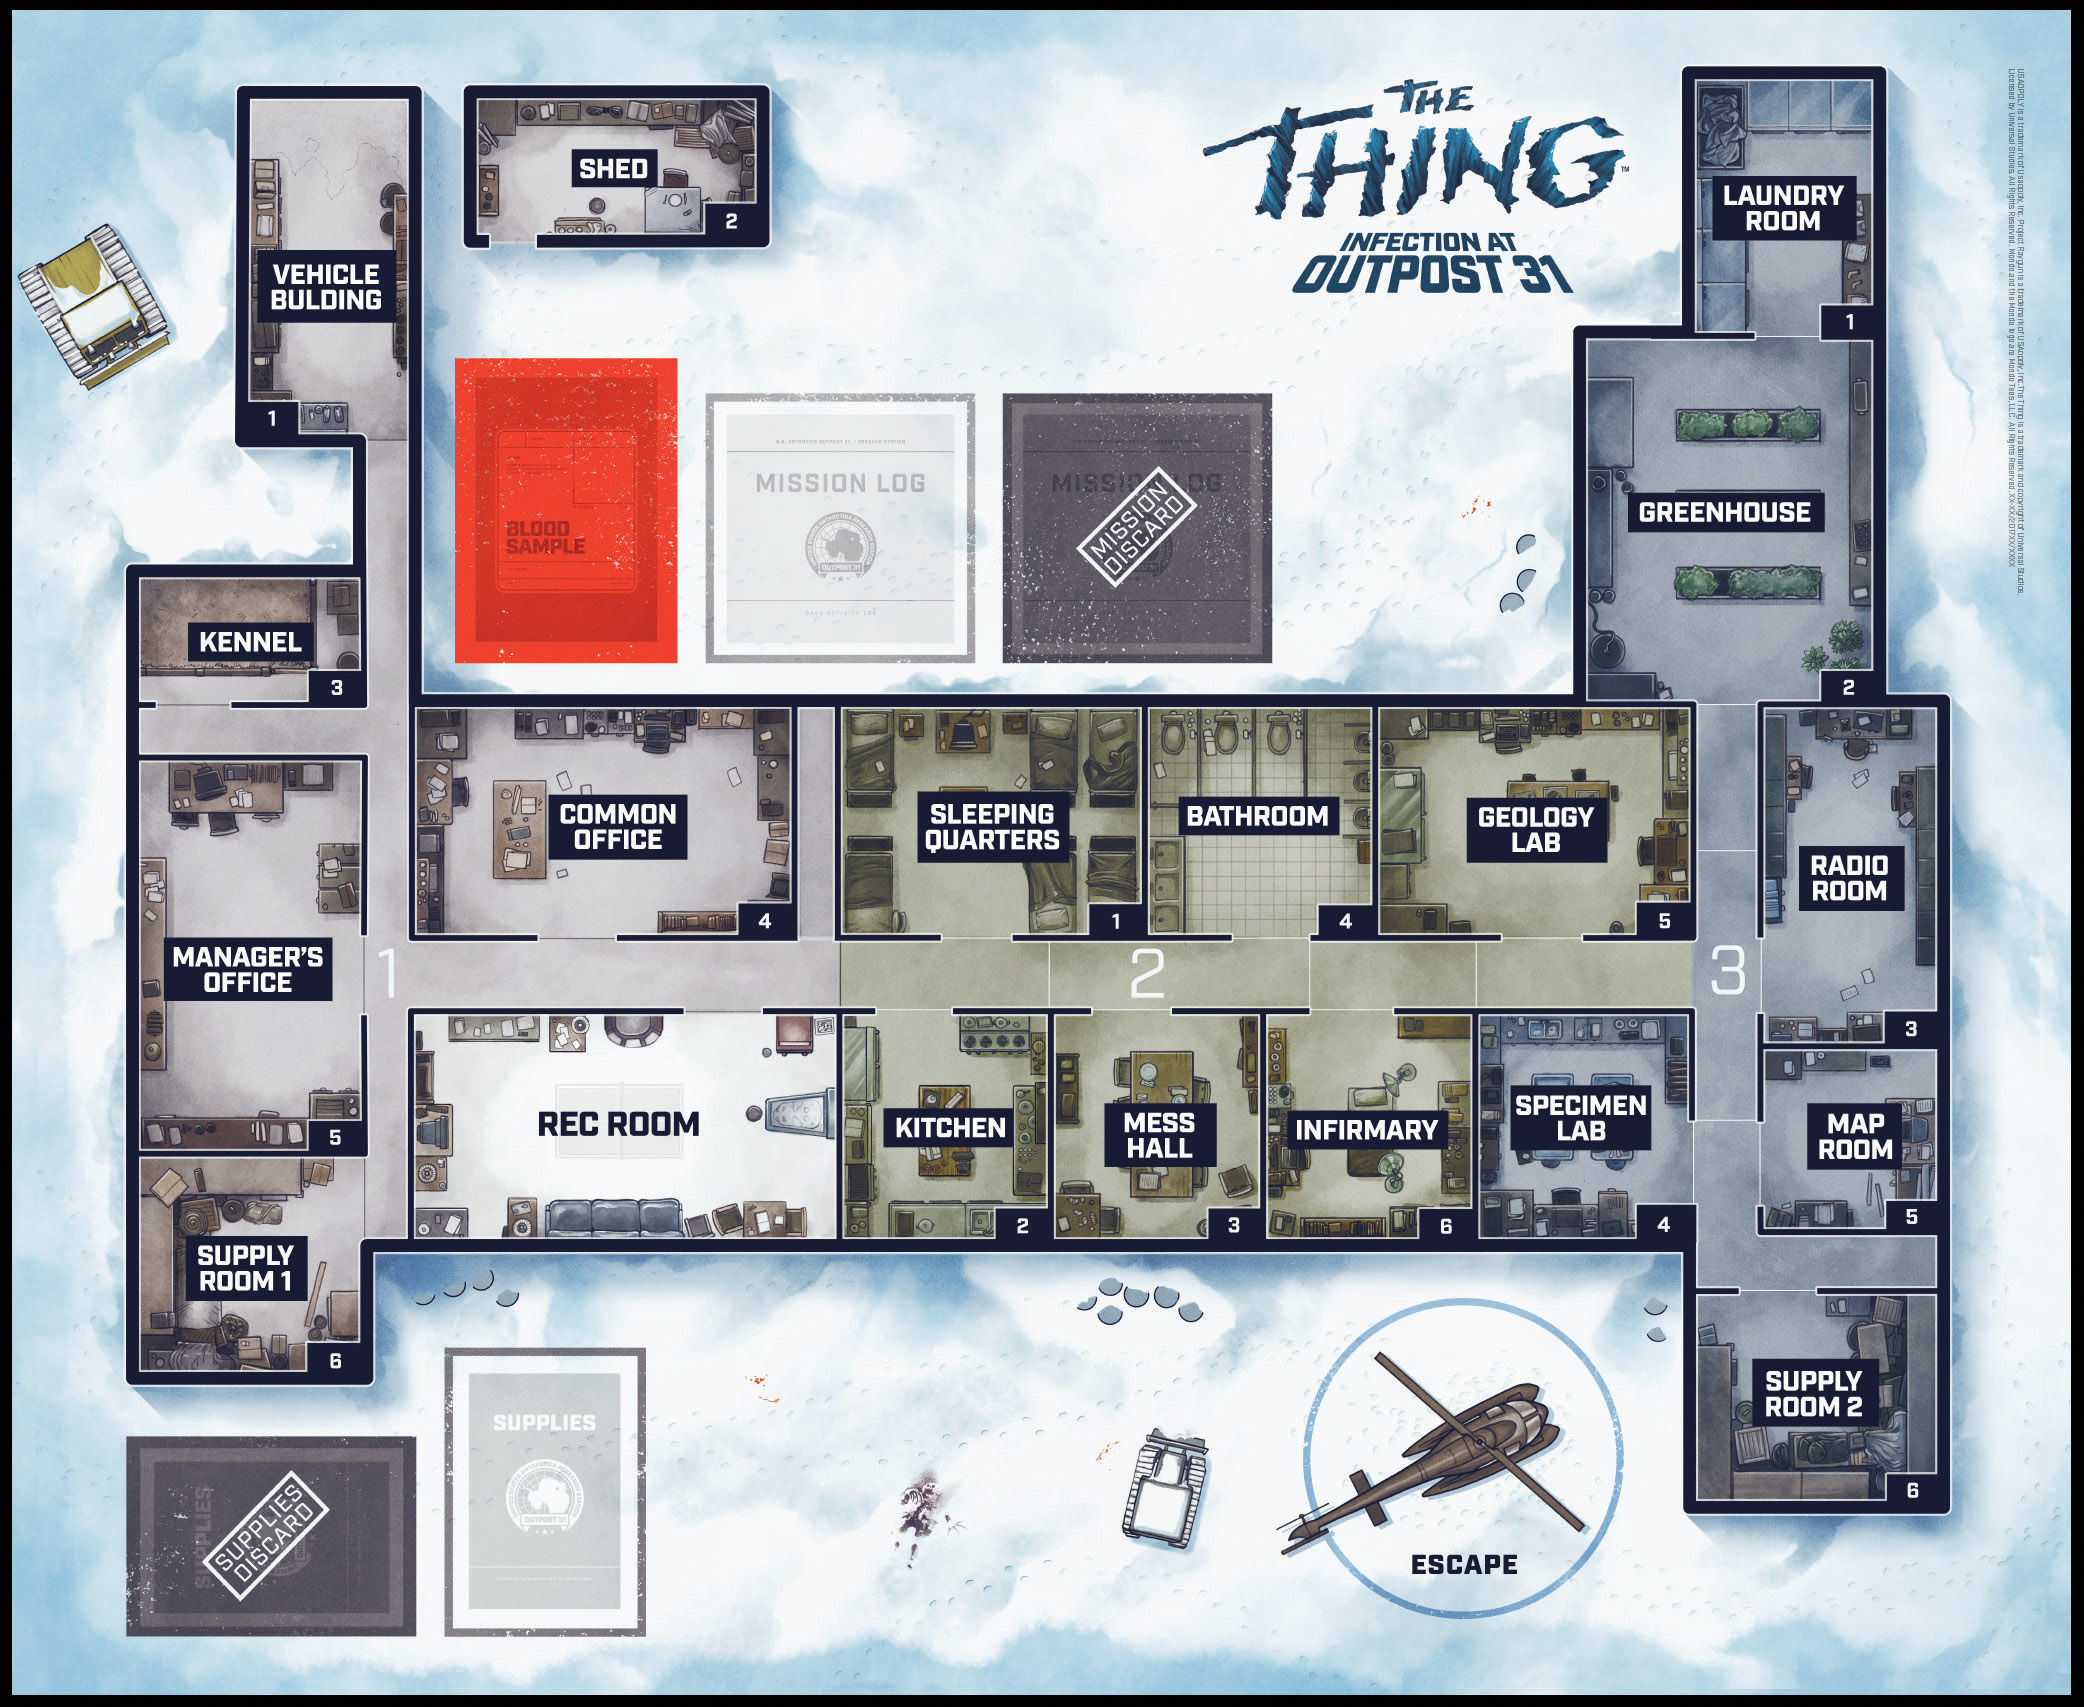 thething-gb